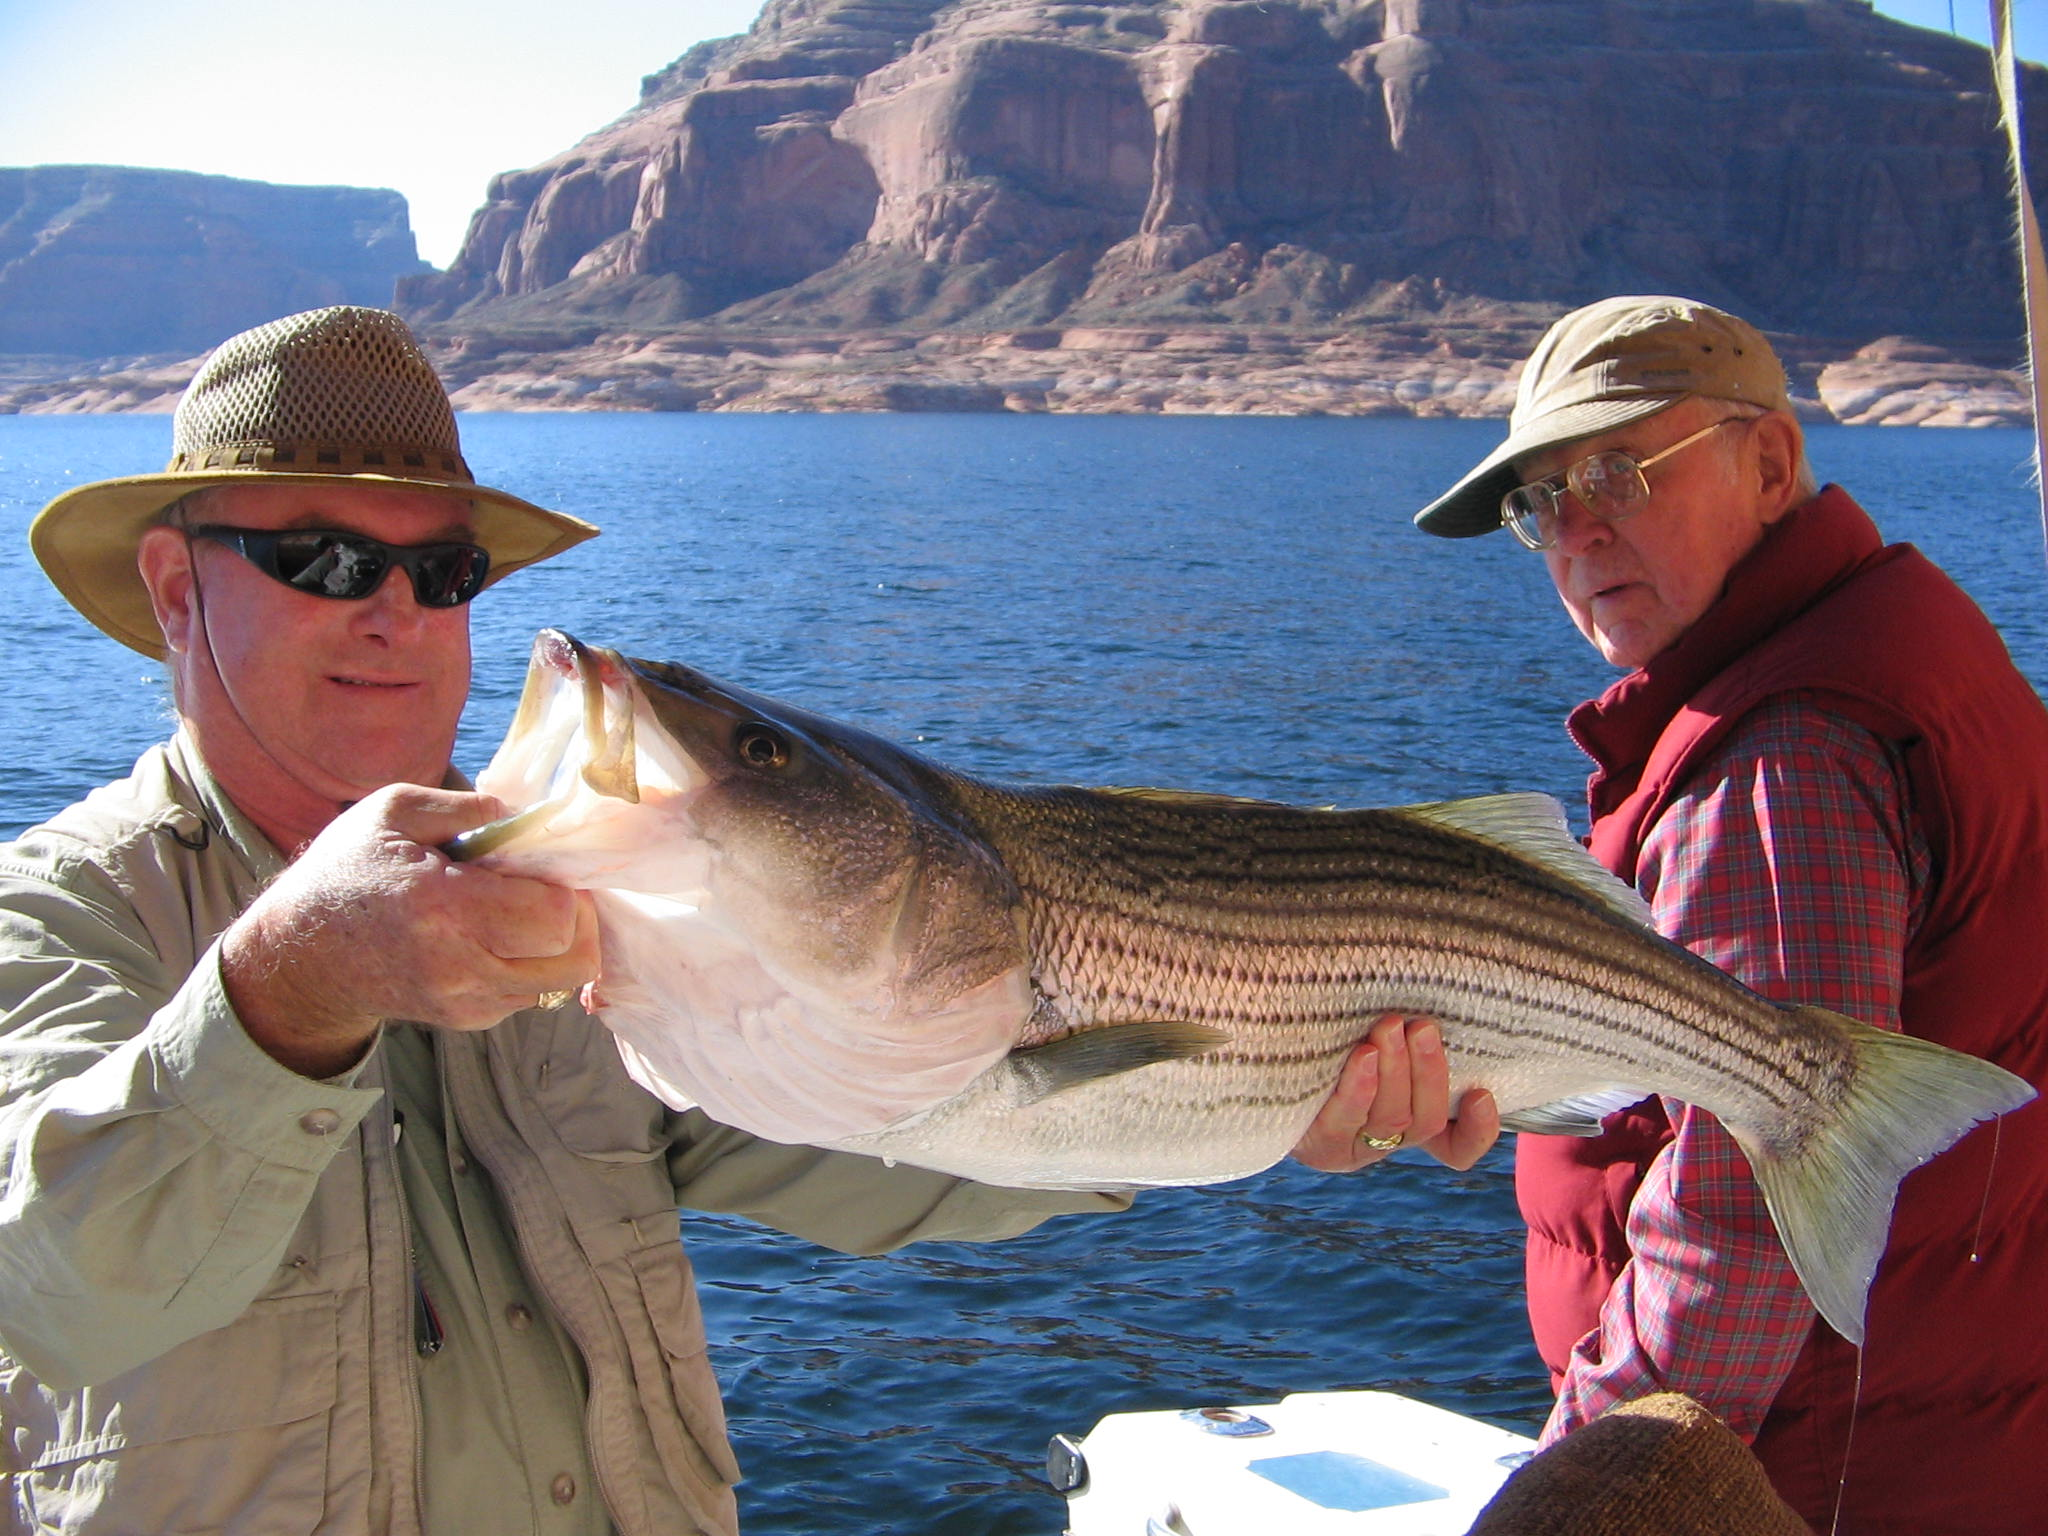 Lake powell 9 13 10 ambassador guides at lake powell for Fishing in tucson